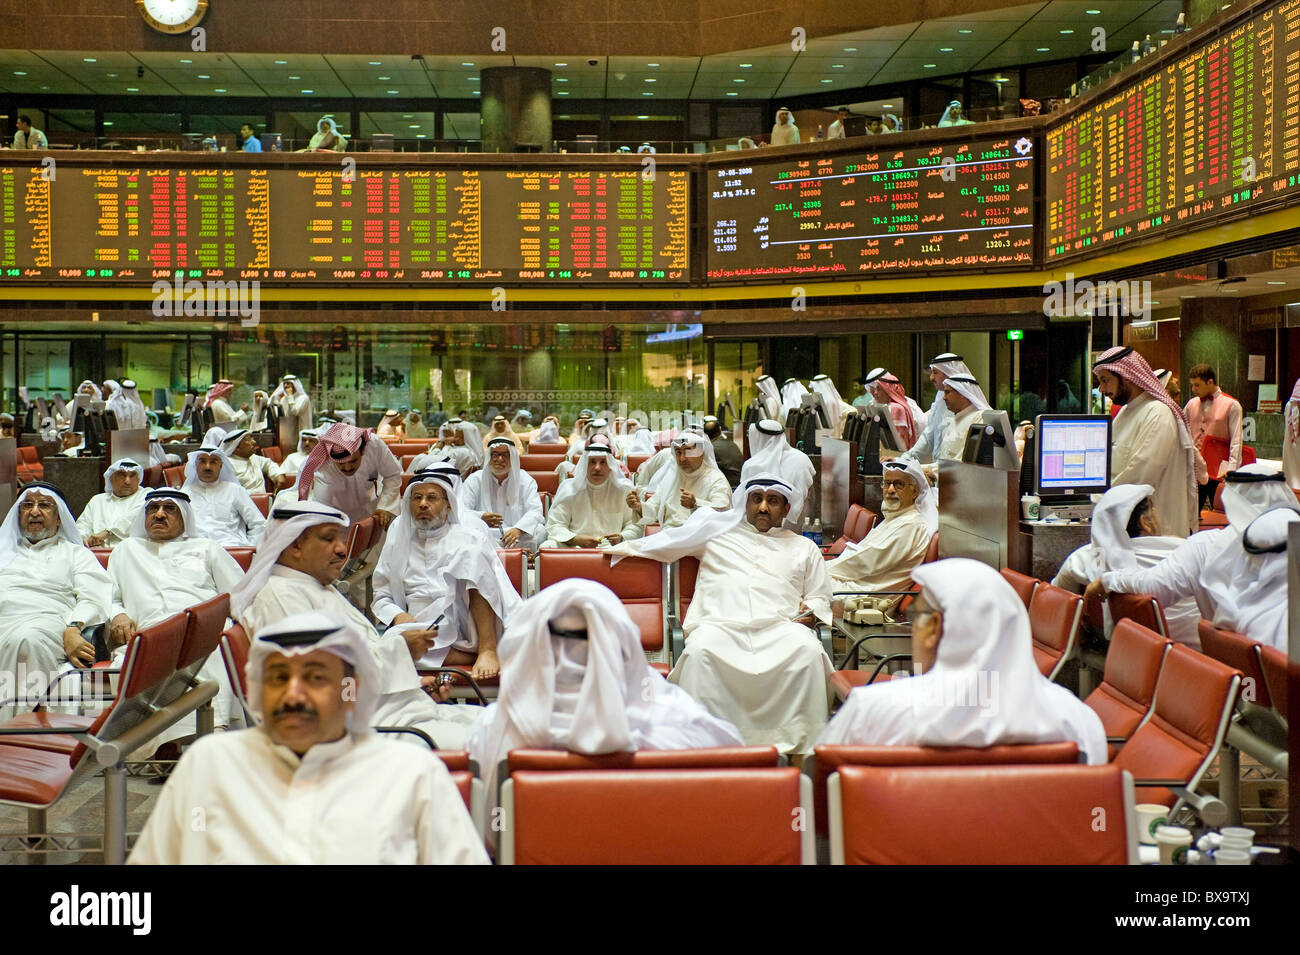 The stock exchange, Kuwait City, Kuwait - Stock Image